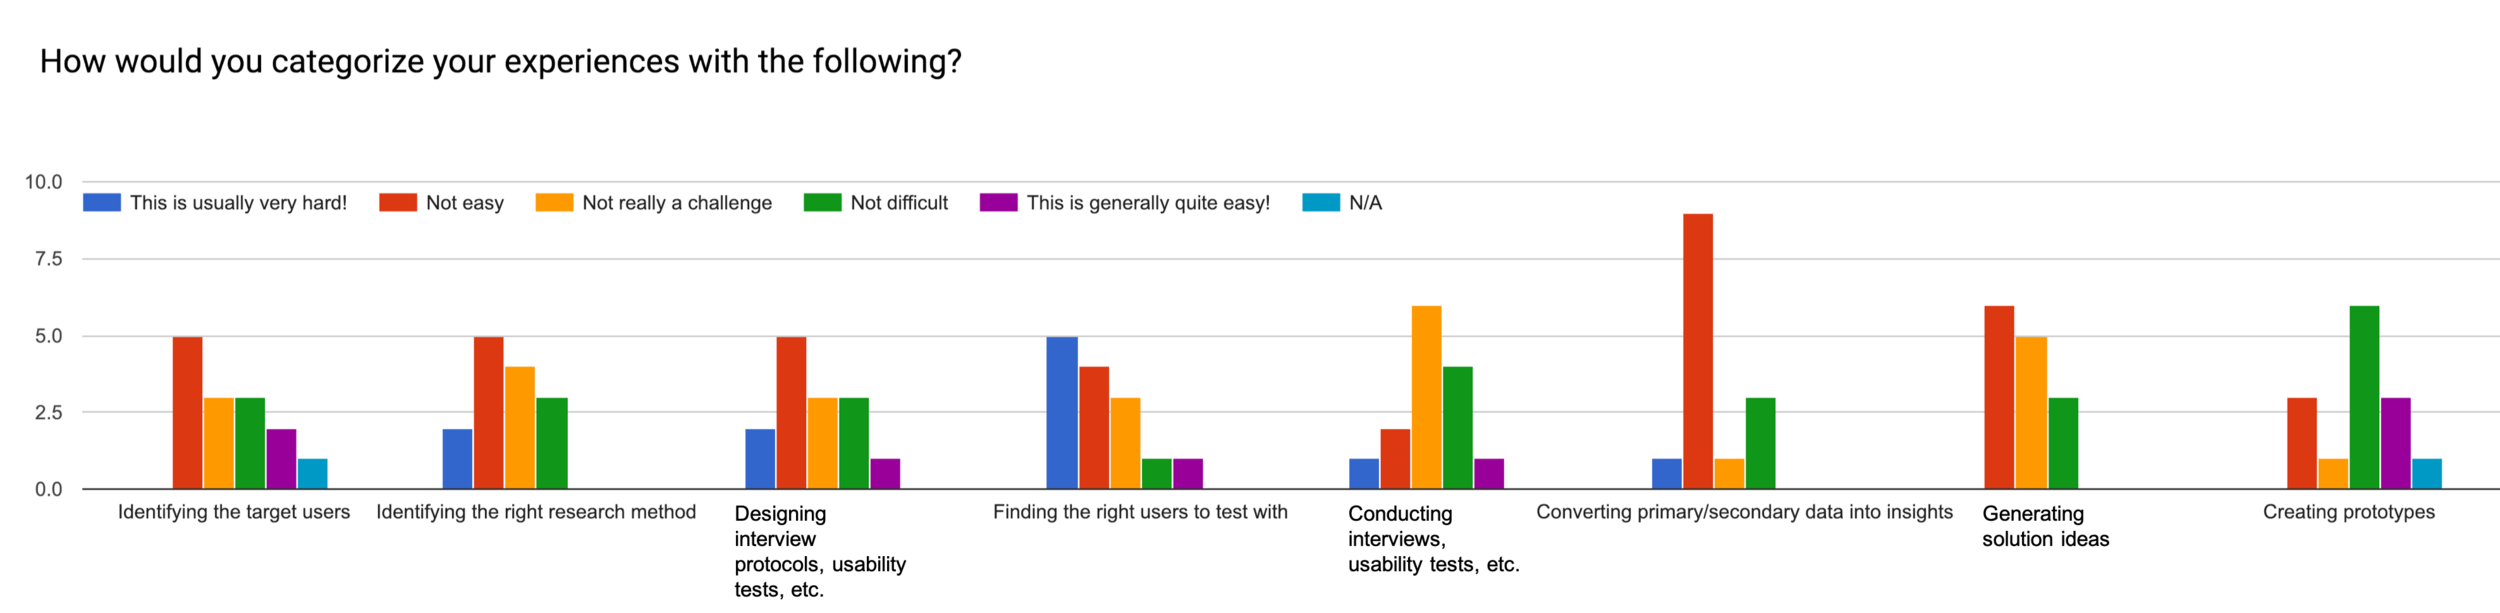 Huduku_survey1.png